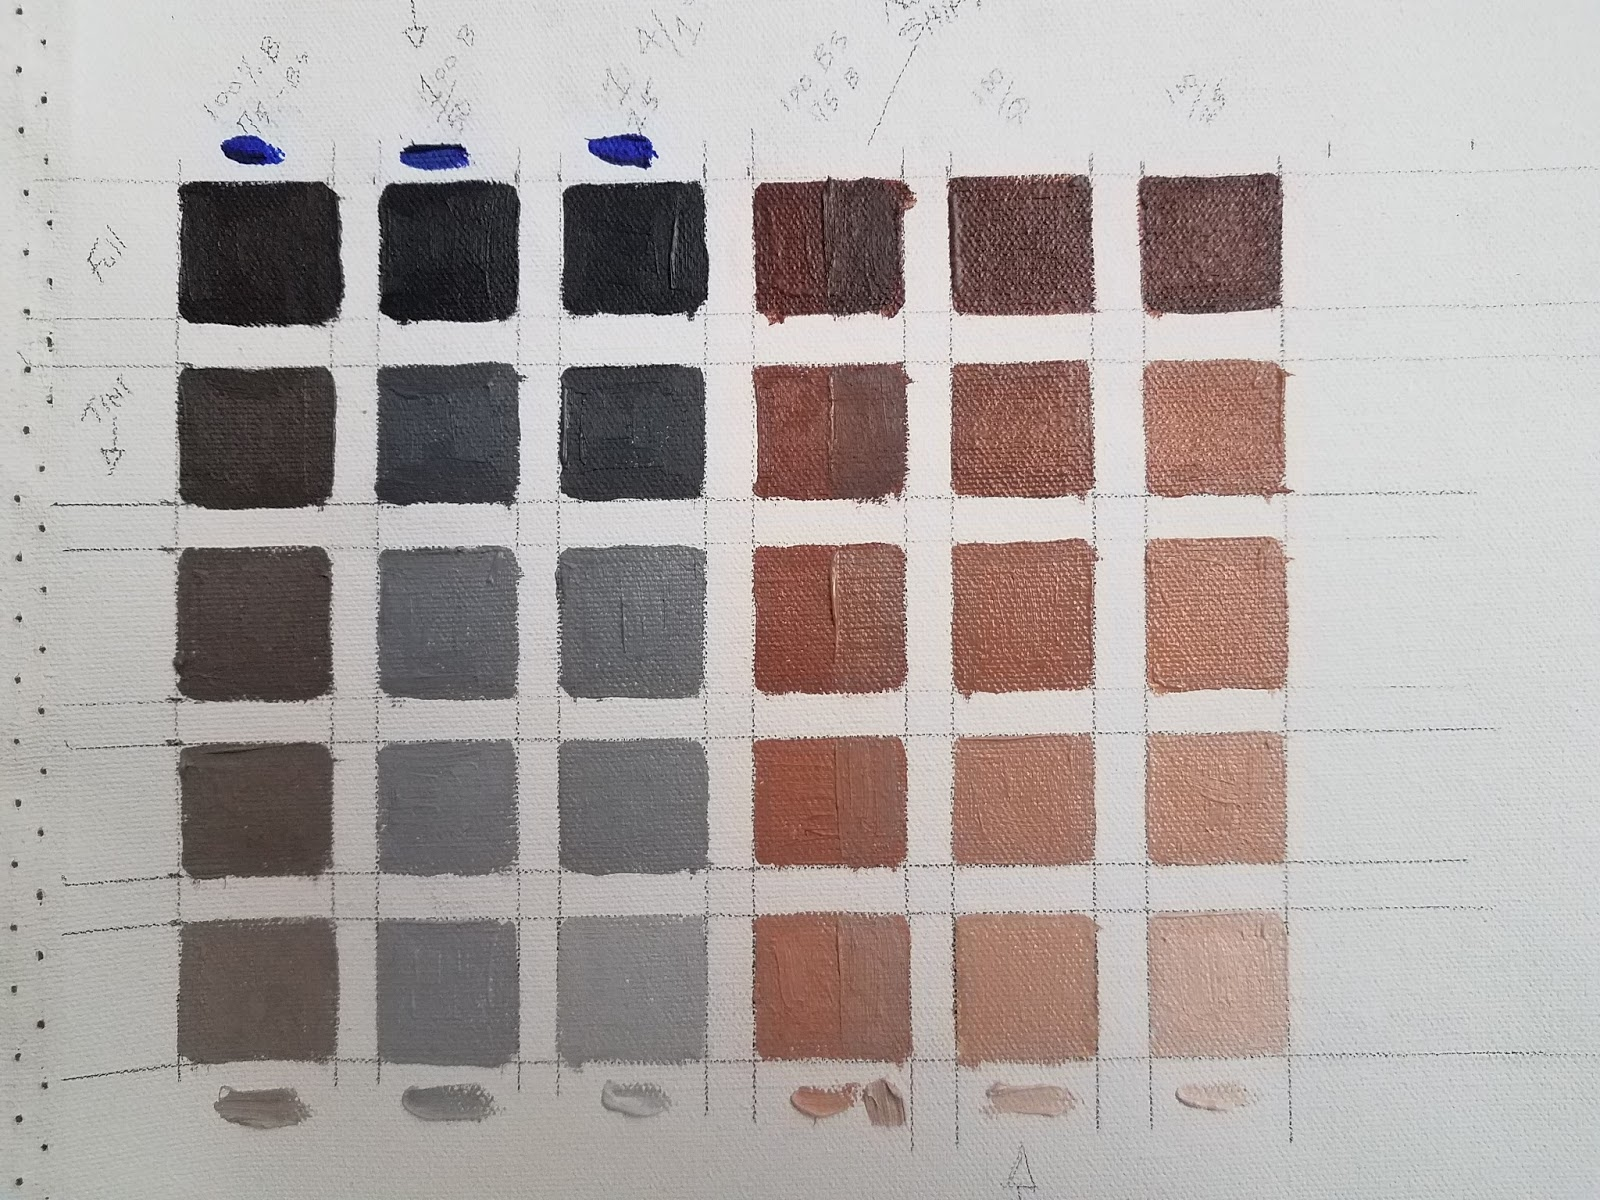 Color Scales Ultramarine Blue And Burnt Sienna Plus White Objectives Paint Opaquely Push The Development Of Options Examine Warm Vs Cool